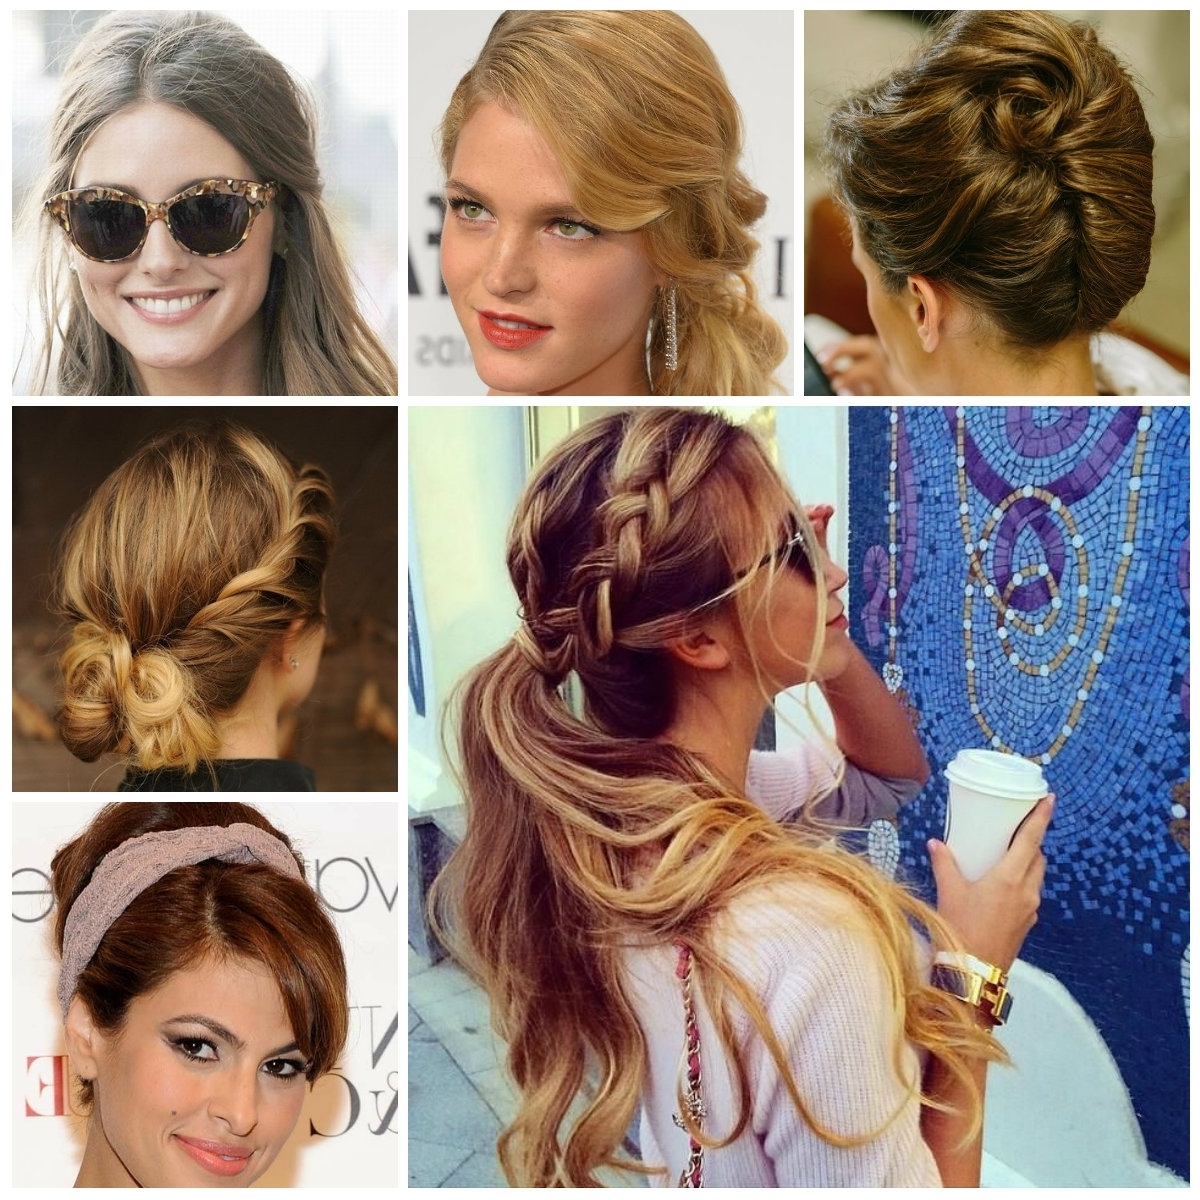 Easy Casual Updo Hairstyles For Long Hair – Women Medium Haircut With Regard To Easiest Updo Hairstyles (View 7 of 15)